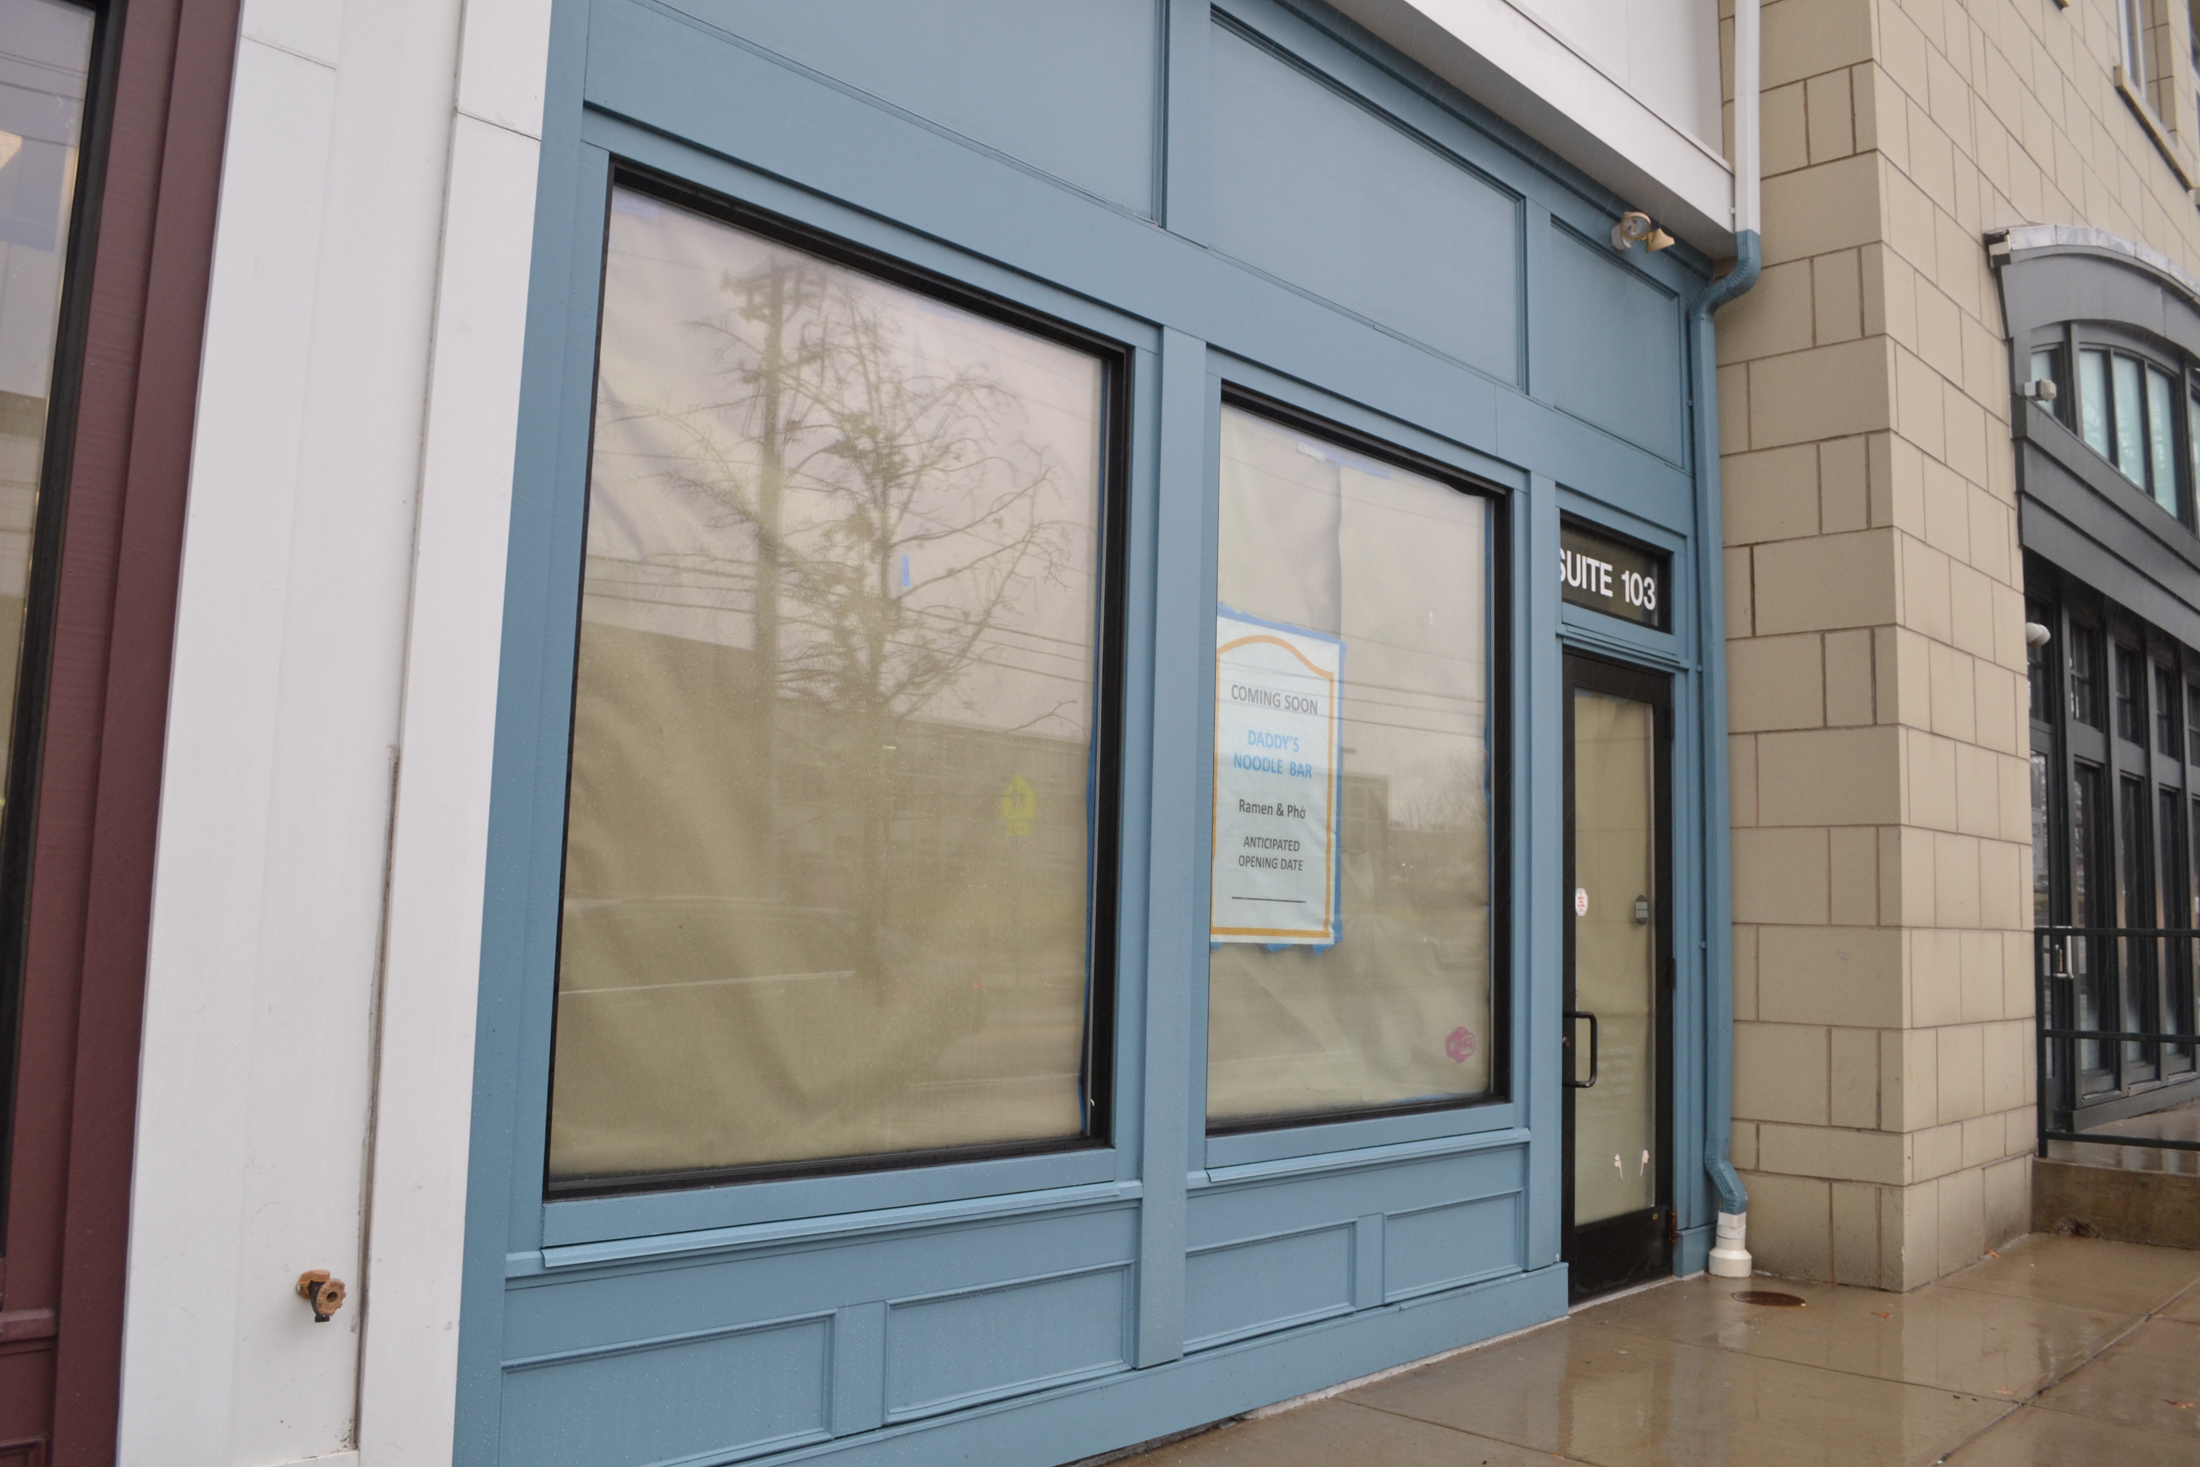 Daddy's Noodle Shop is located in Storrs Center next to 7-11 where FroYo World used to be. Snow and other delays have setback the opening of the restaurant. (Olivia Stenger/The Daily Campus)